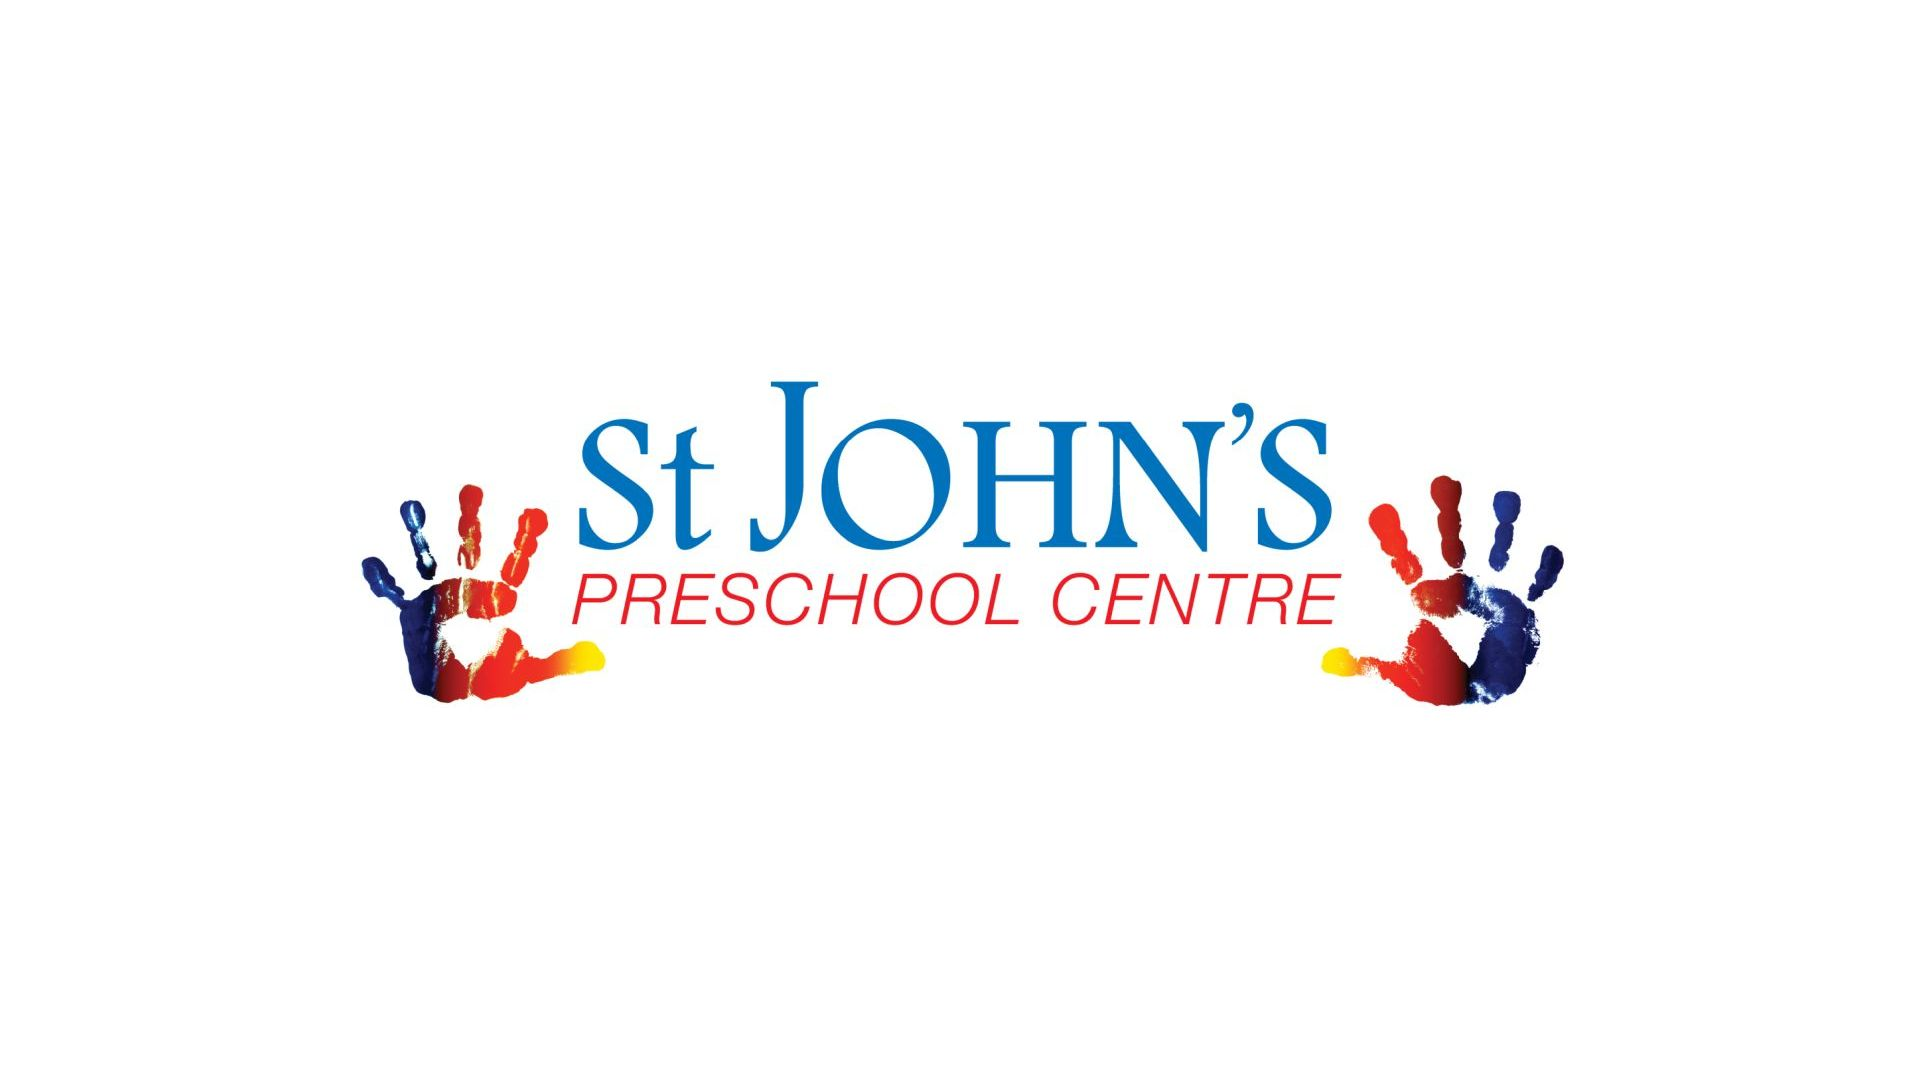 <p>Contact the Preschool Address: 152 Cox's Road, North Ryde, 2113 Phone: (02) 9888 7835 Email: preschool@northrydeanglican.org.au About the Preschool St John's Preschool was established in 1970 by the Parish Council of St John's Anglican Church, North Ryde. St John's Preschool is a not-for-profit community based preschool and provides an  educational [&hellip;]</p>